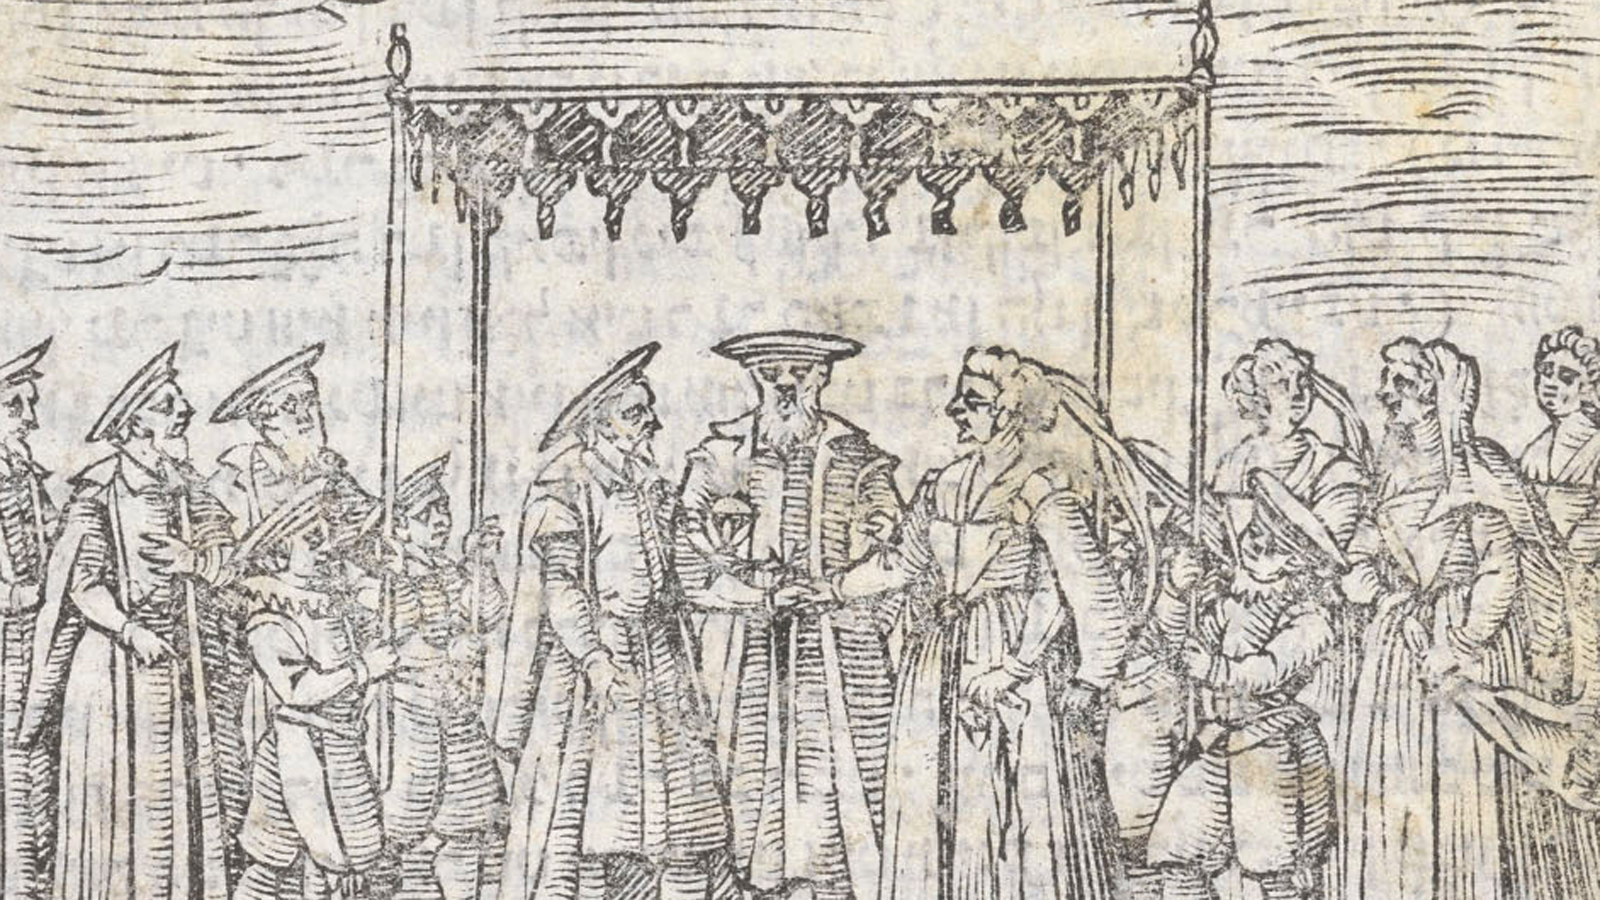 How were the Jews regarded in 16th-century England?